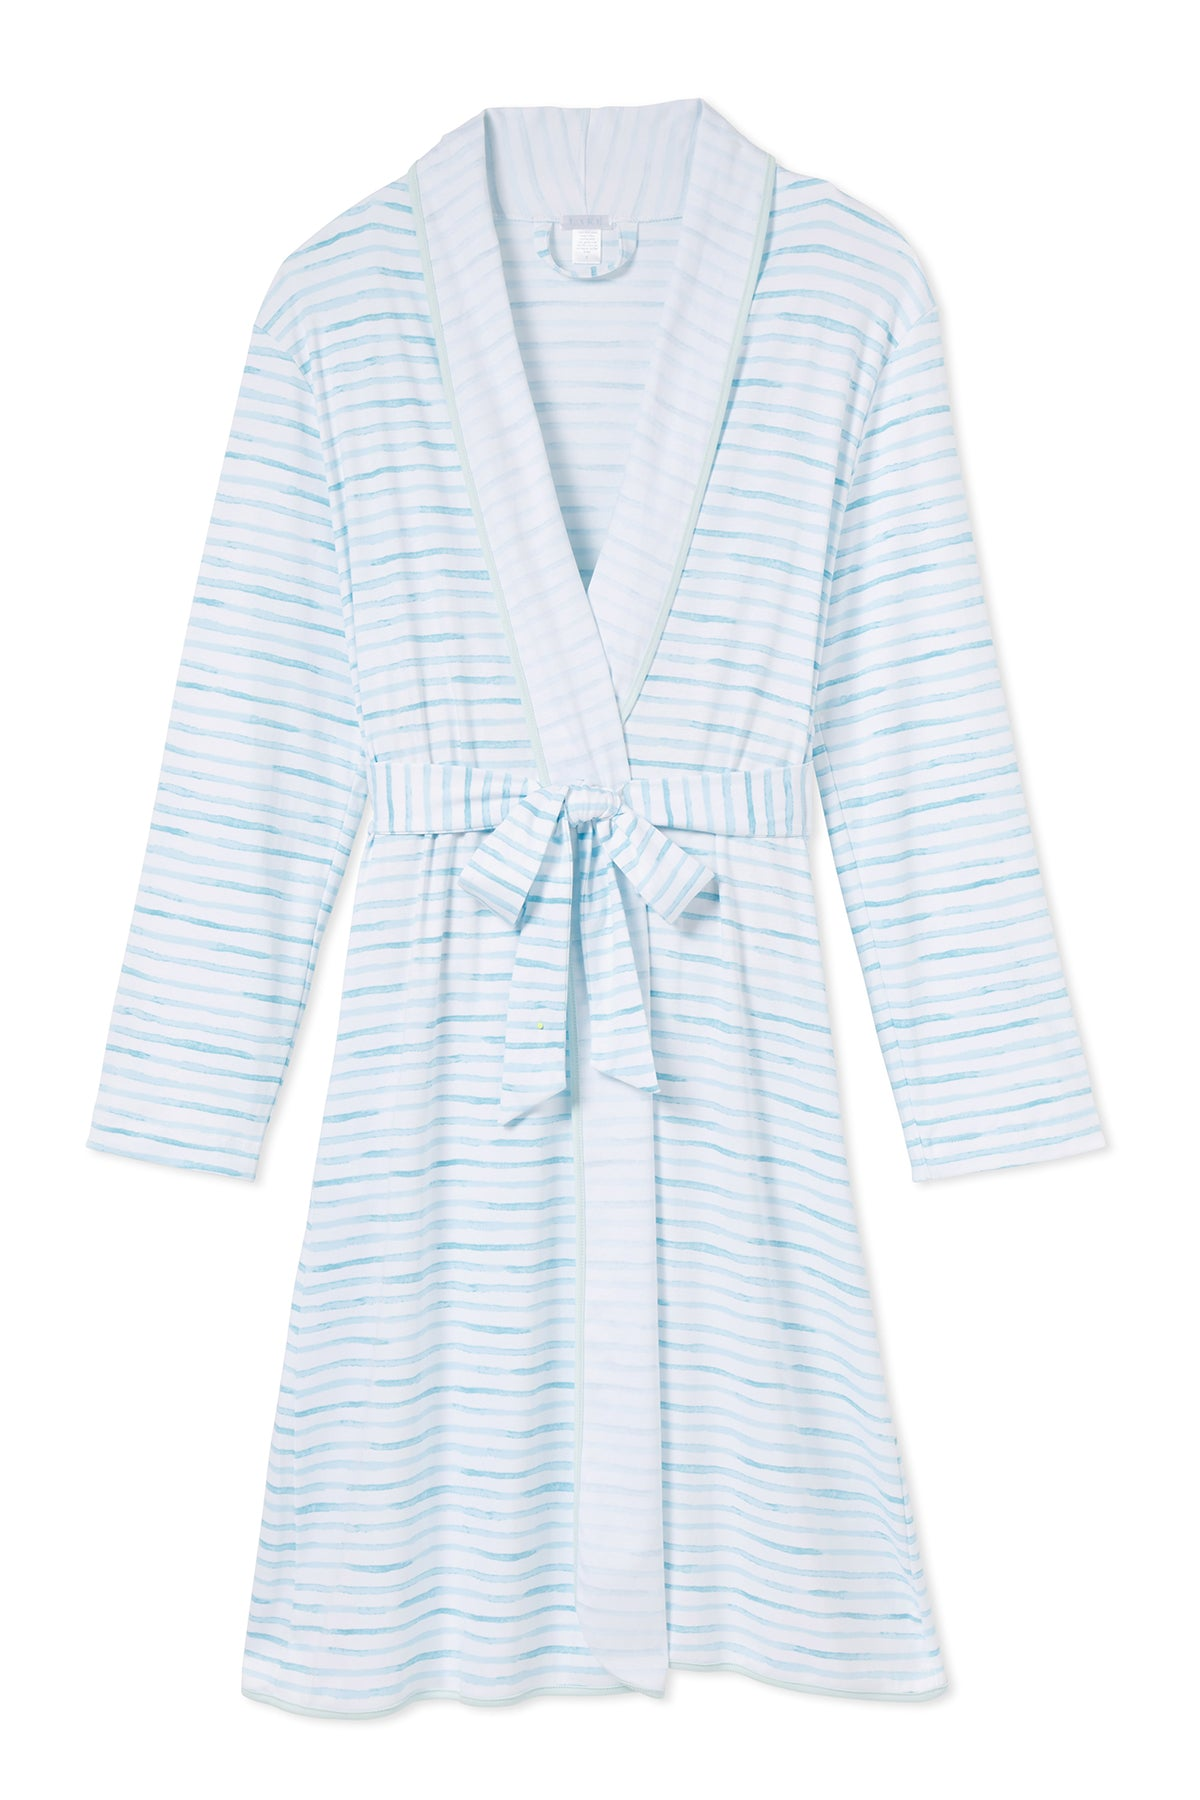 Pima Robe in Sea Breeze